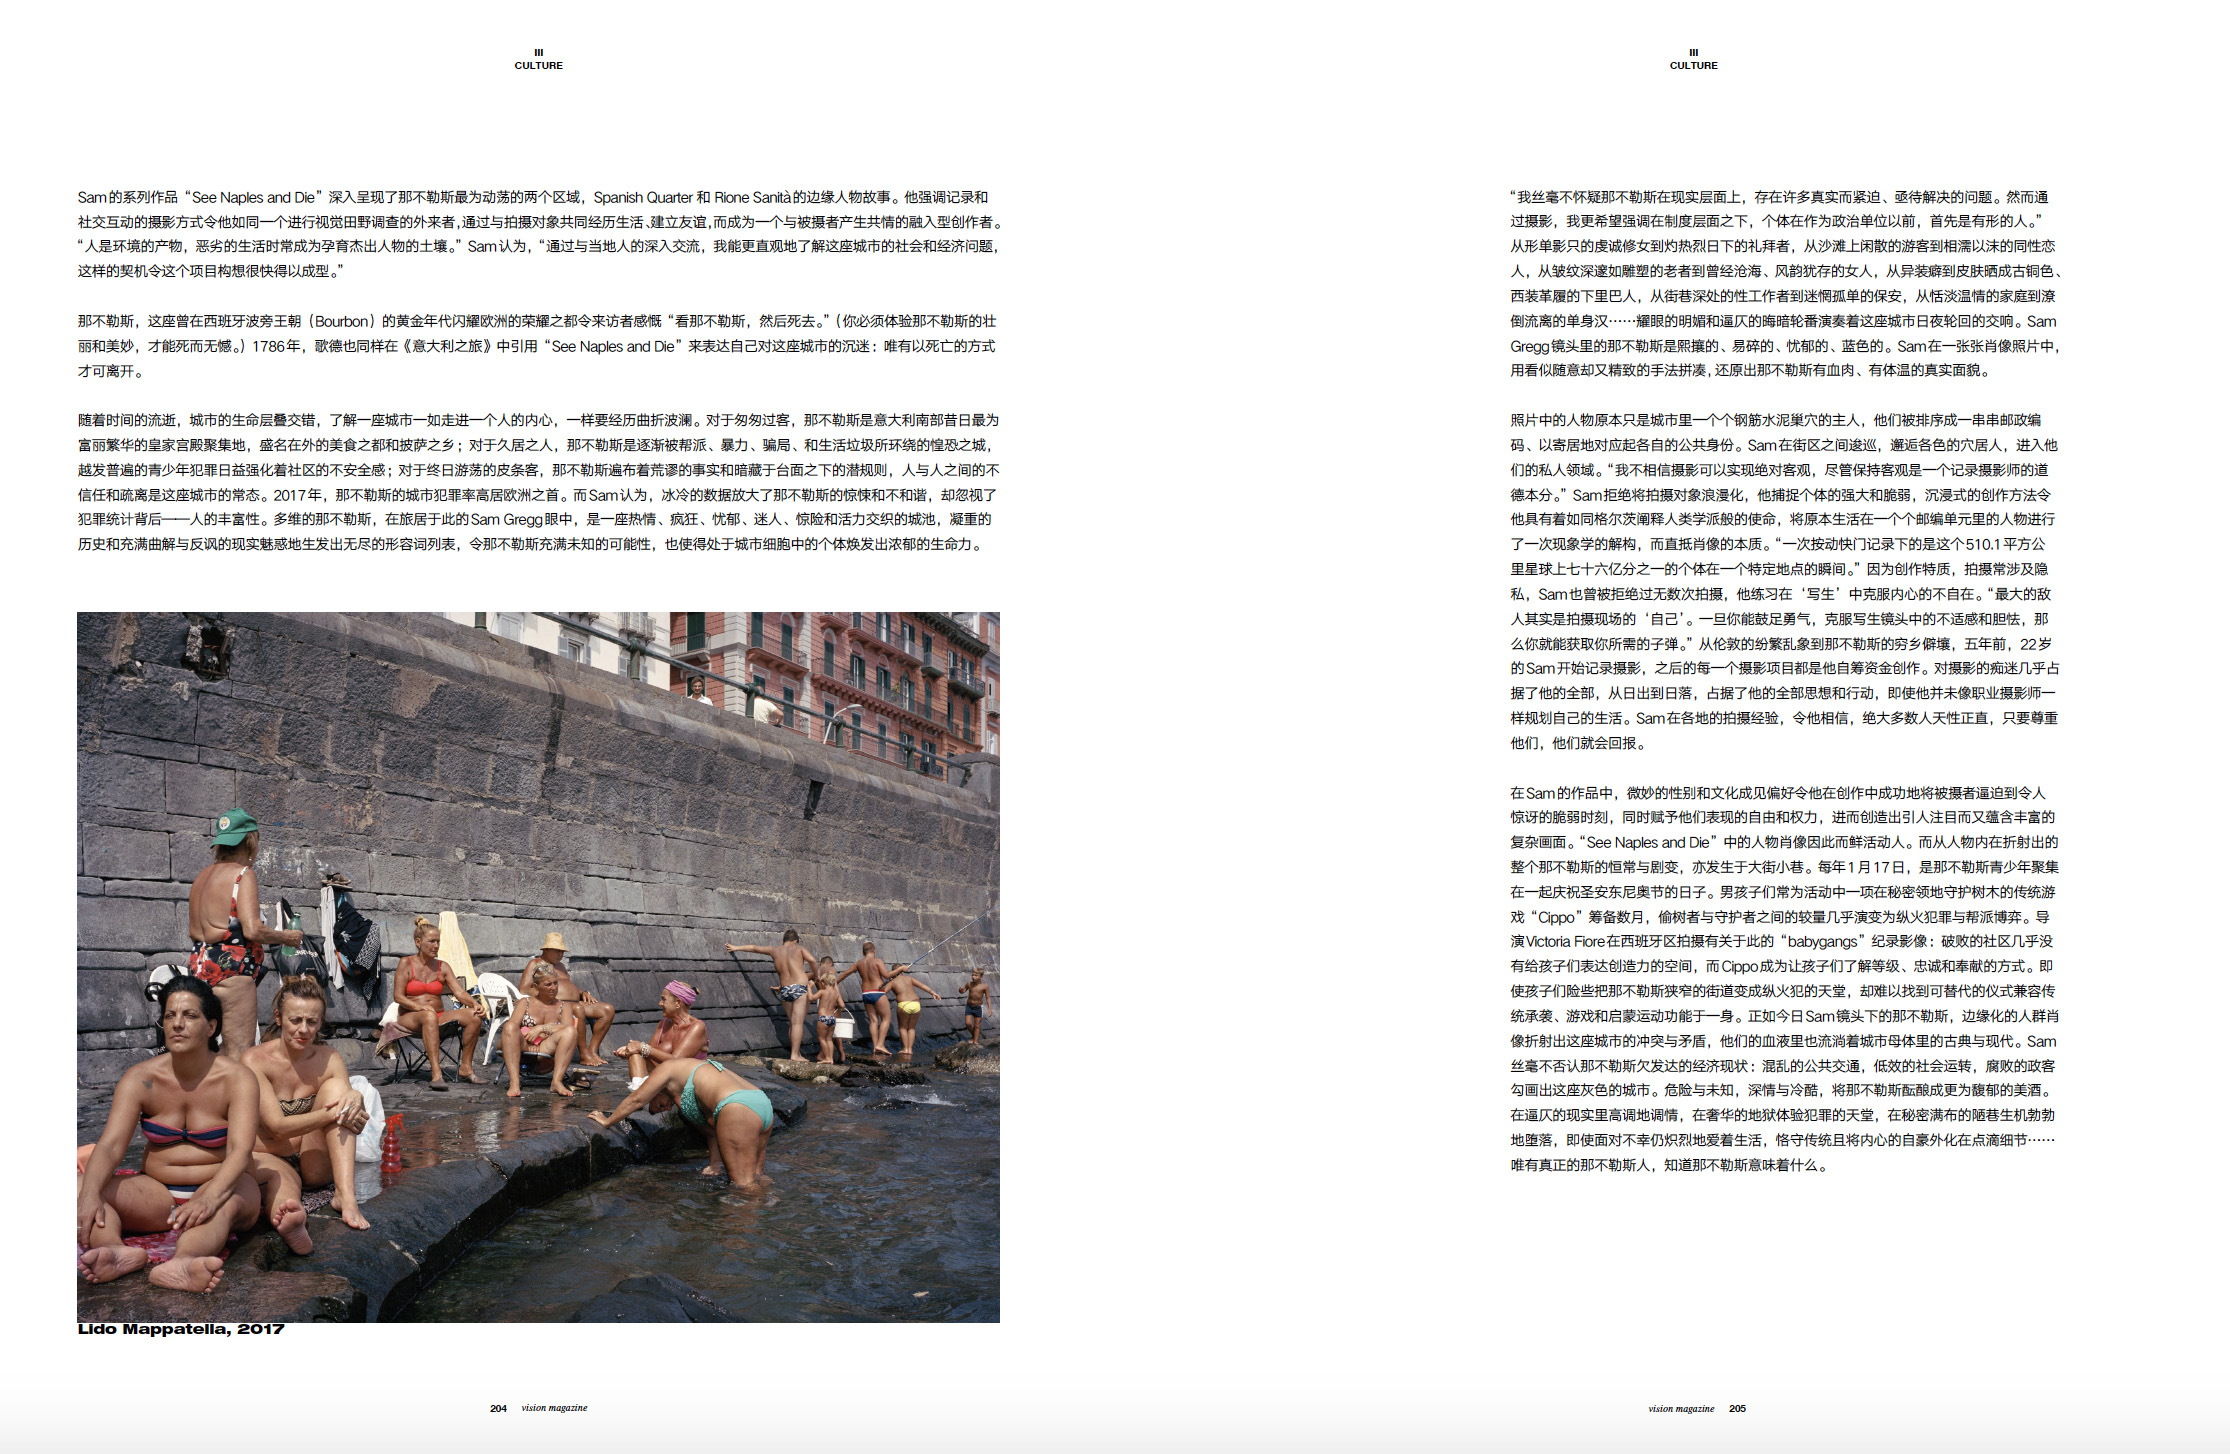 2-vision-magazine-china-sam-gregg-see-naples-and-die.jpg